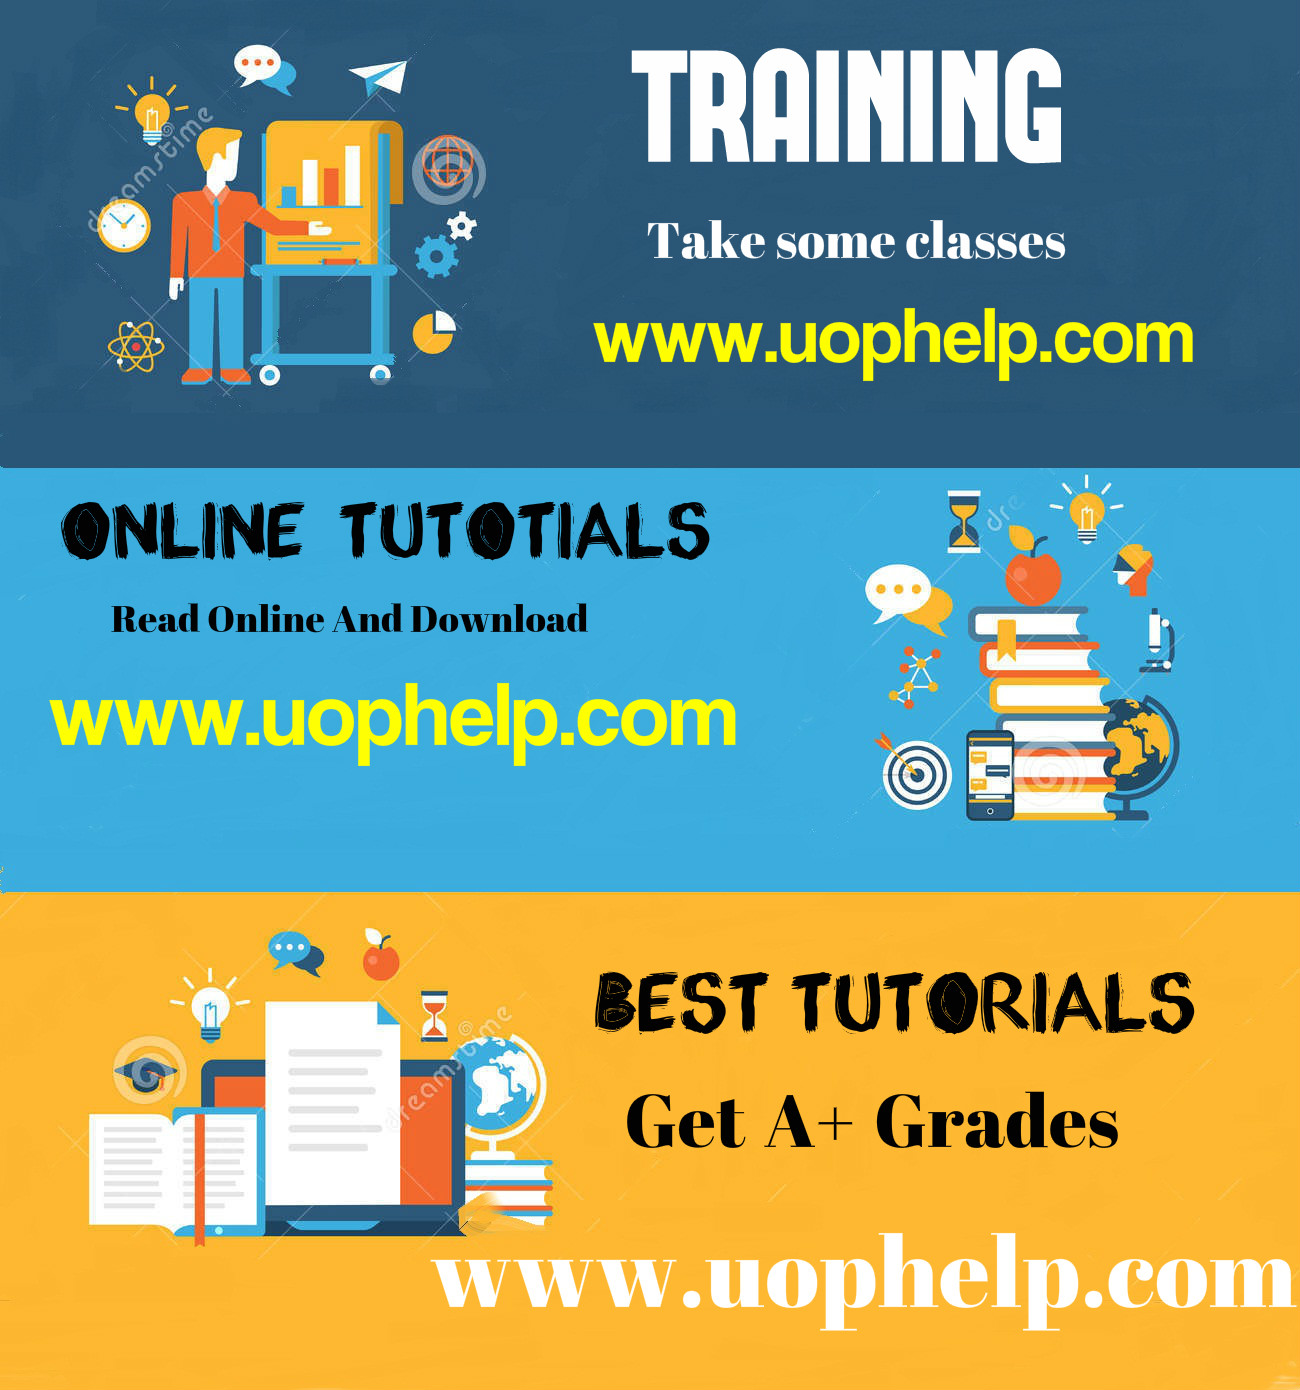 psy 280 expert tutor uophelp on emaze week 3 individual assignment middle childhood and adolescence development psy 280 week 3 team assignment parenting and education during early childhood